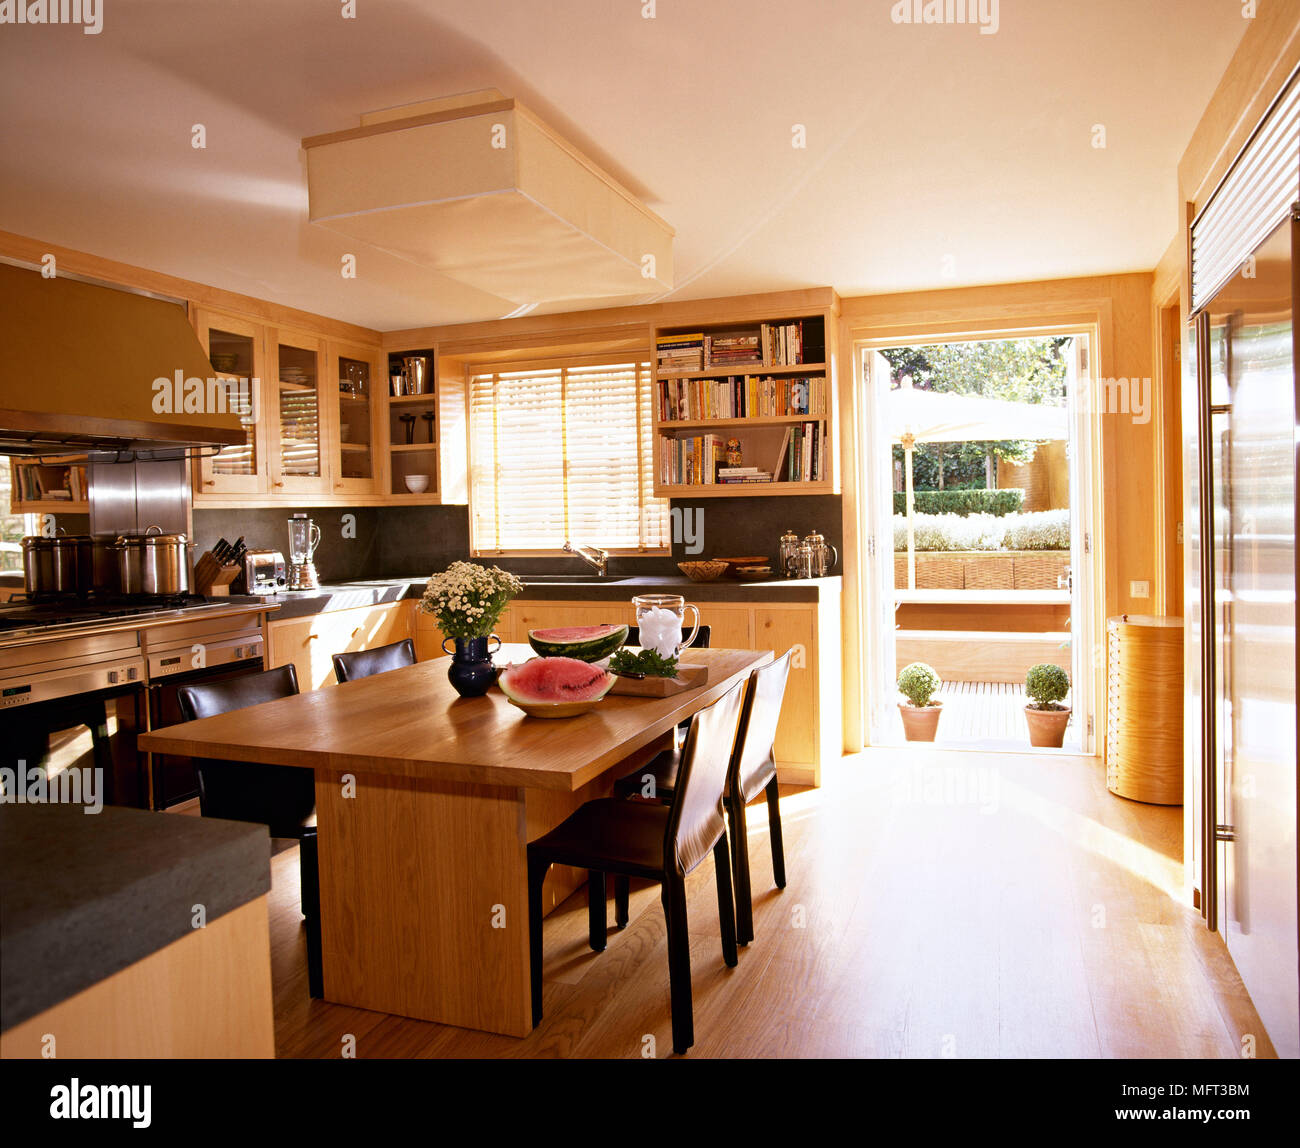 Modern Kitchen Dining Area Wood Units Table Chairs